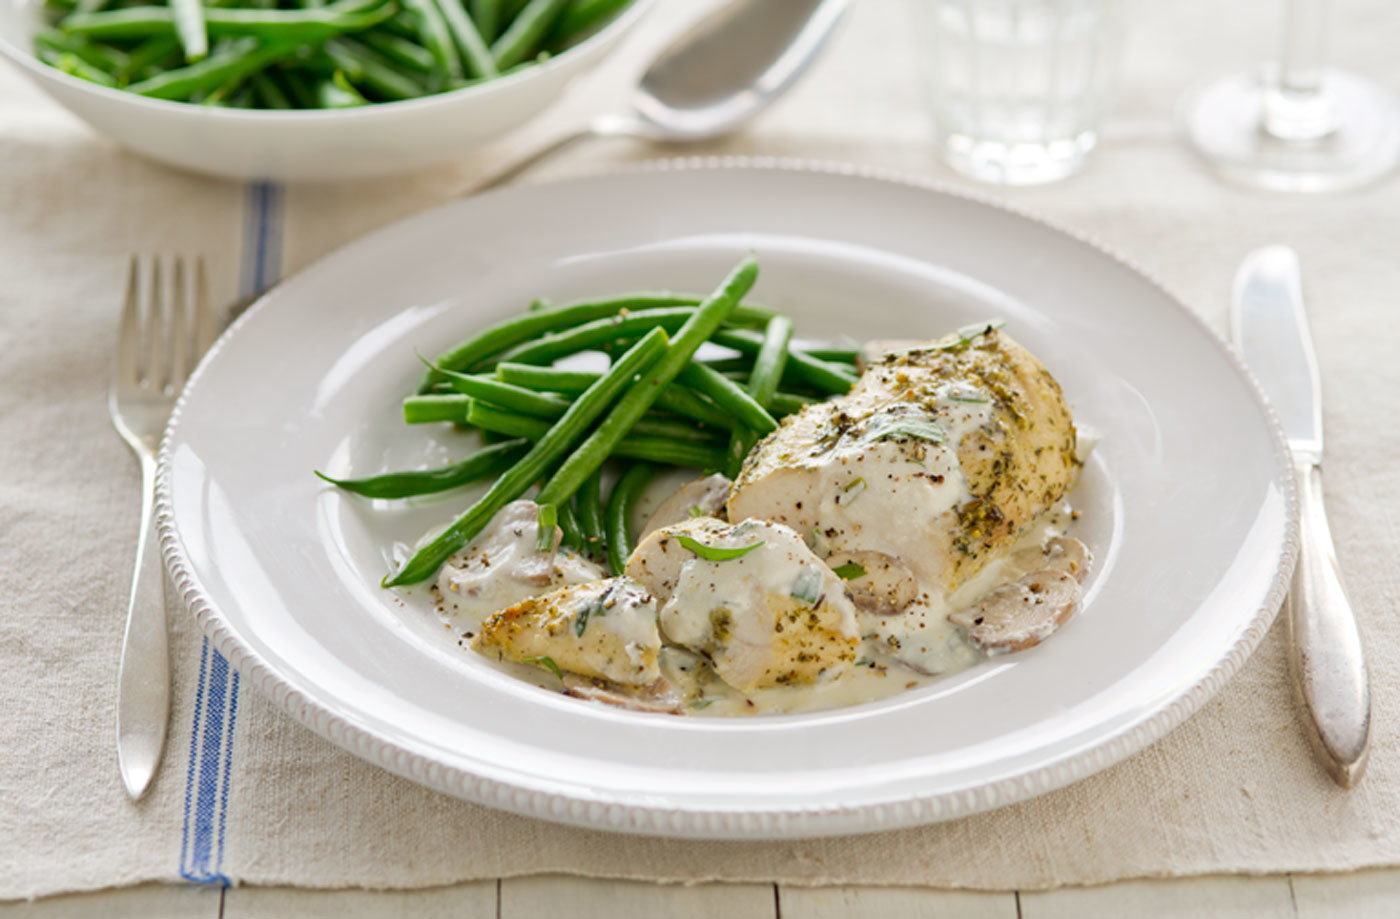 Healthy living recipes low fat healthy food tesco real food healthy living garlic and herb chicken with creamy mushroom sauce forumfinder Gallery